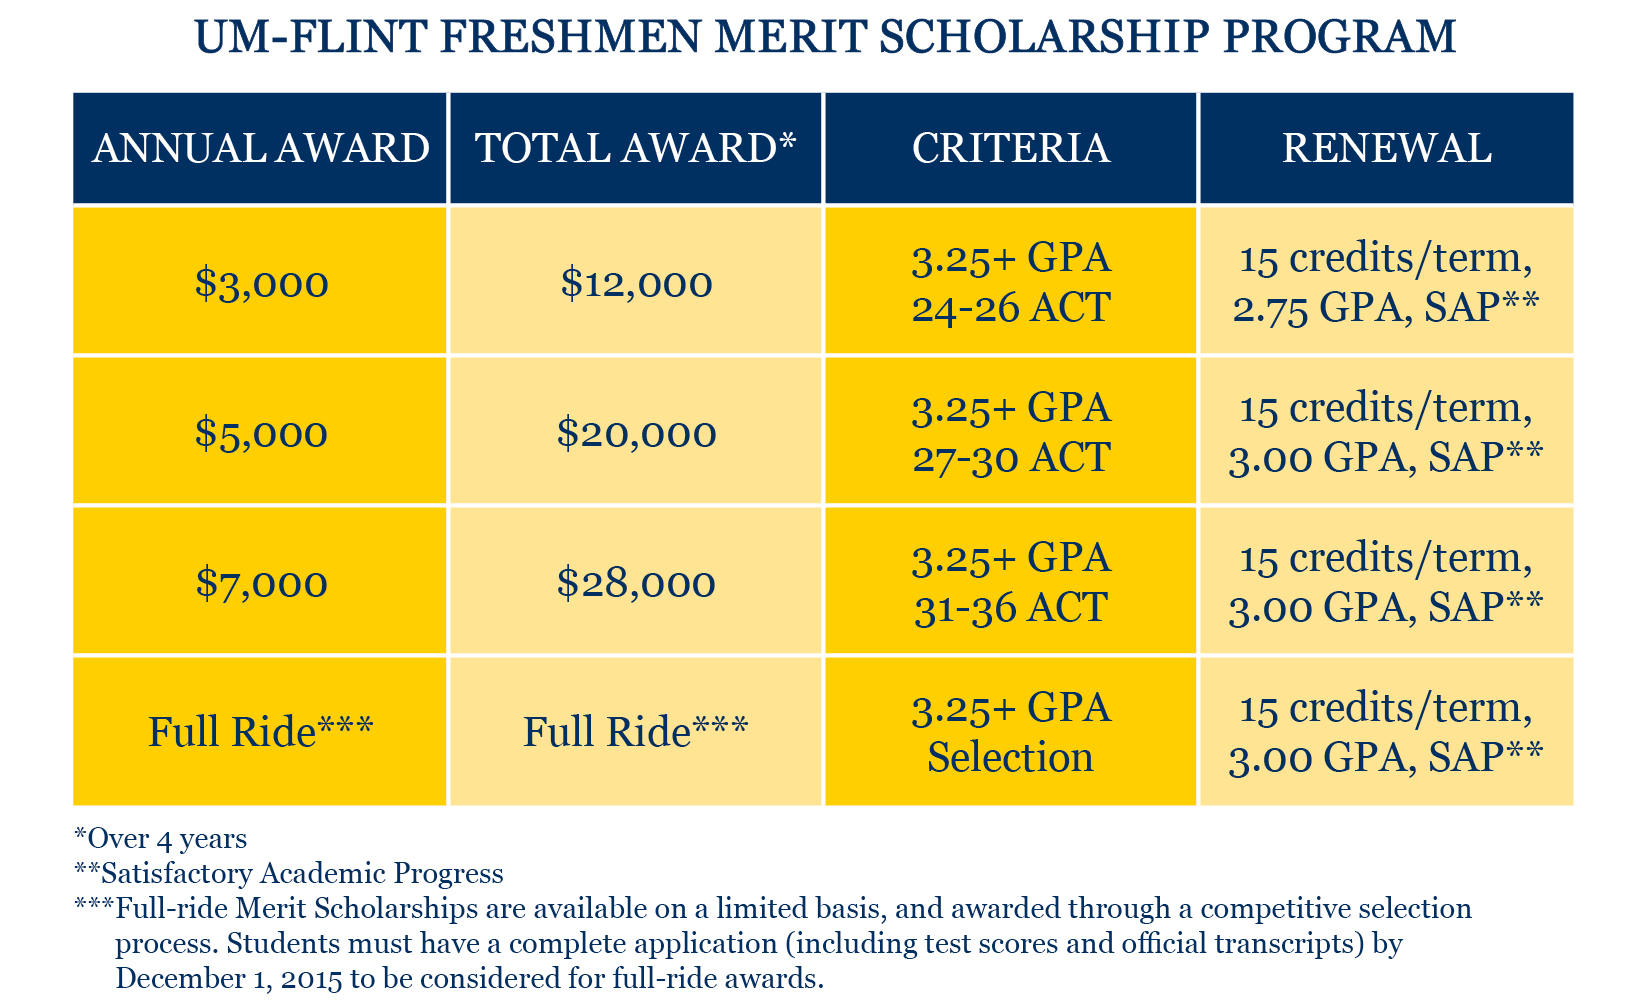 UM-Flint Freshmen Merit Scholarship Matrix